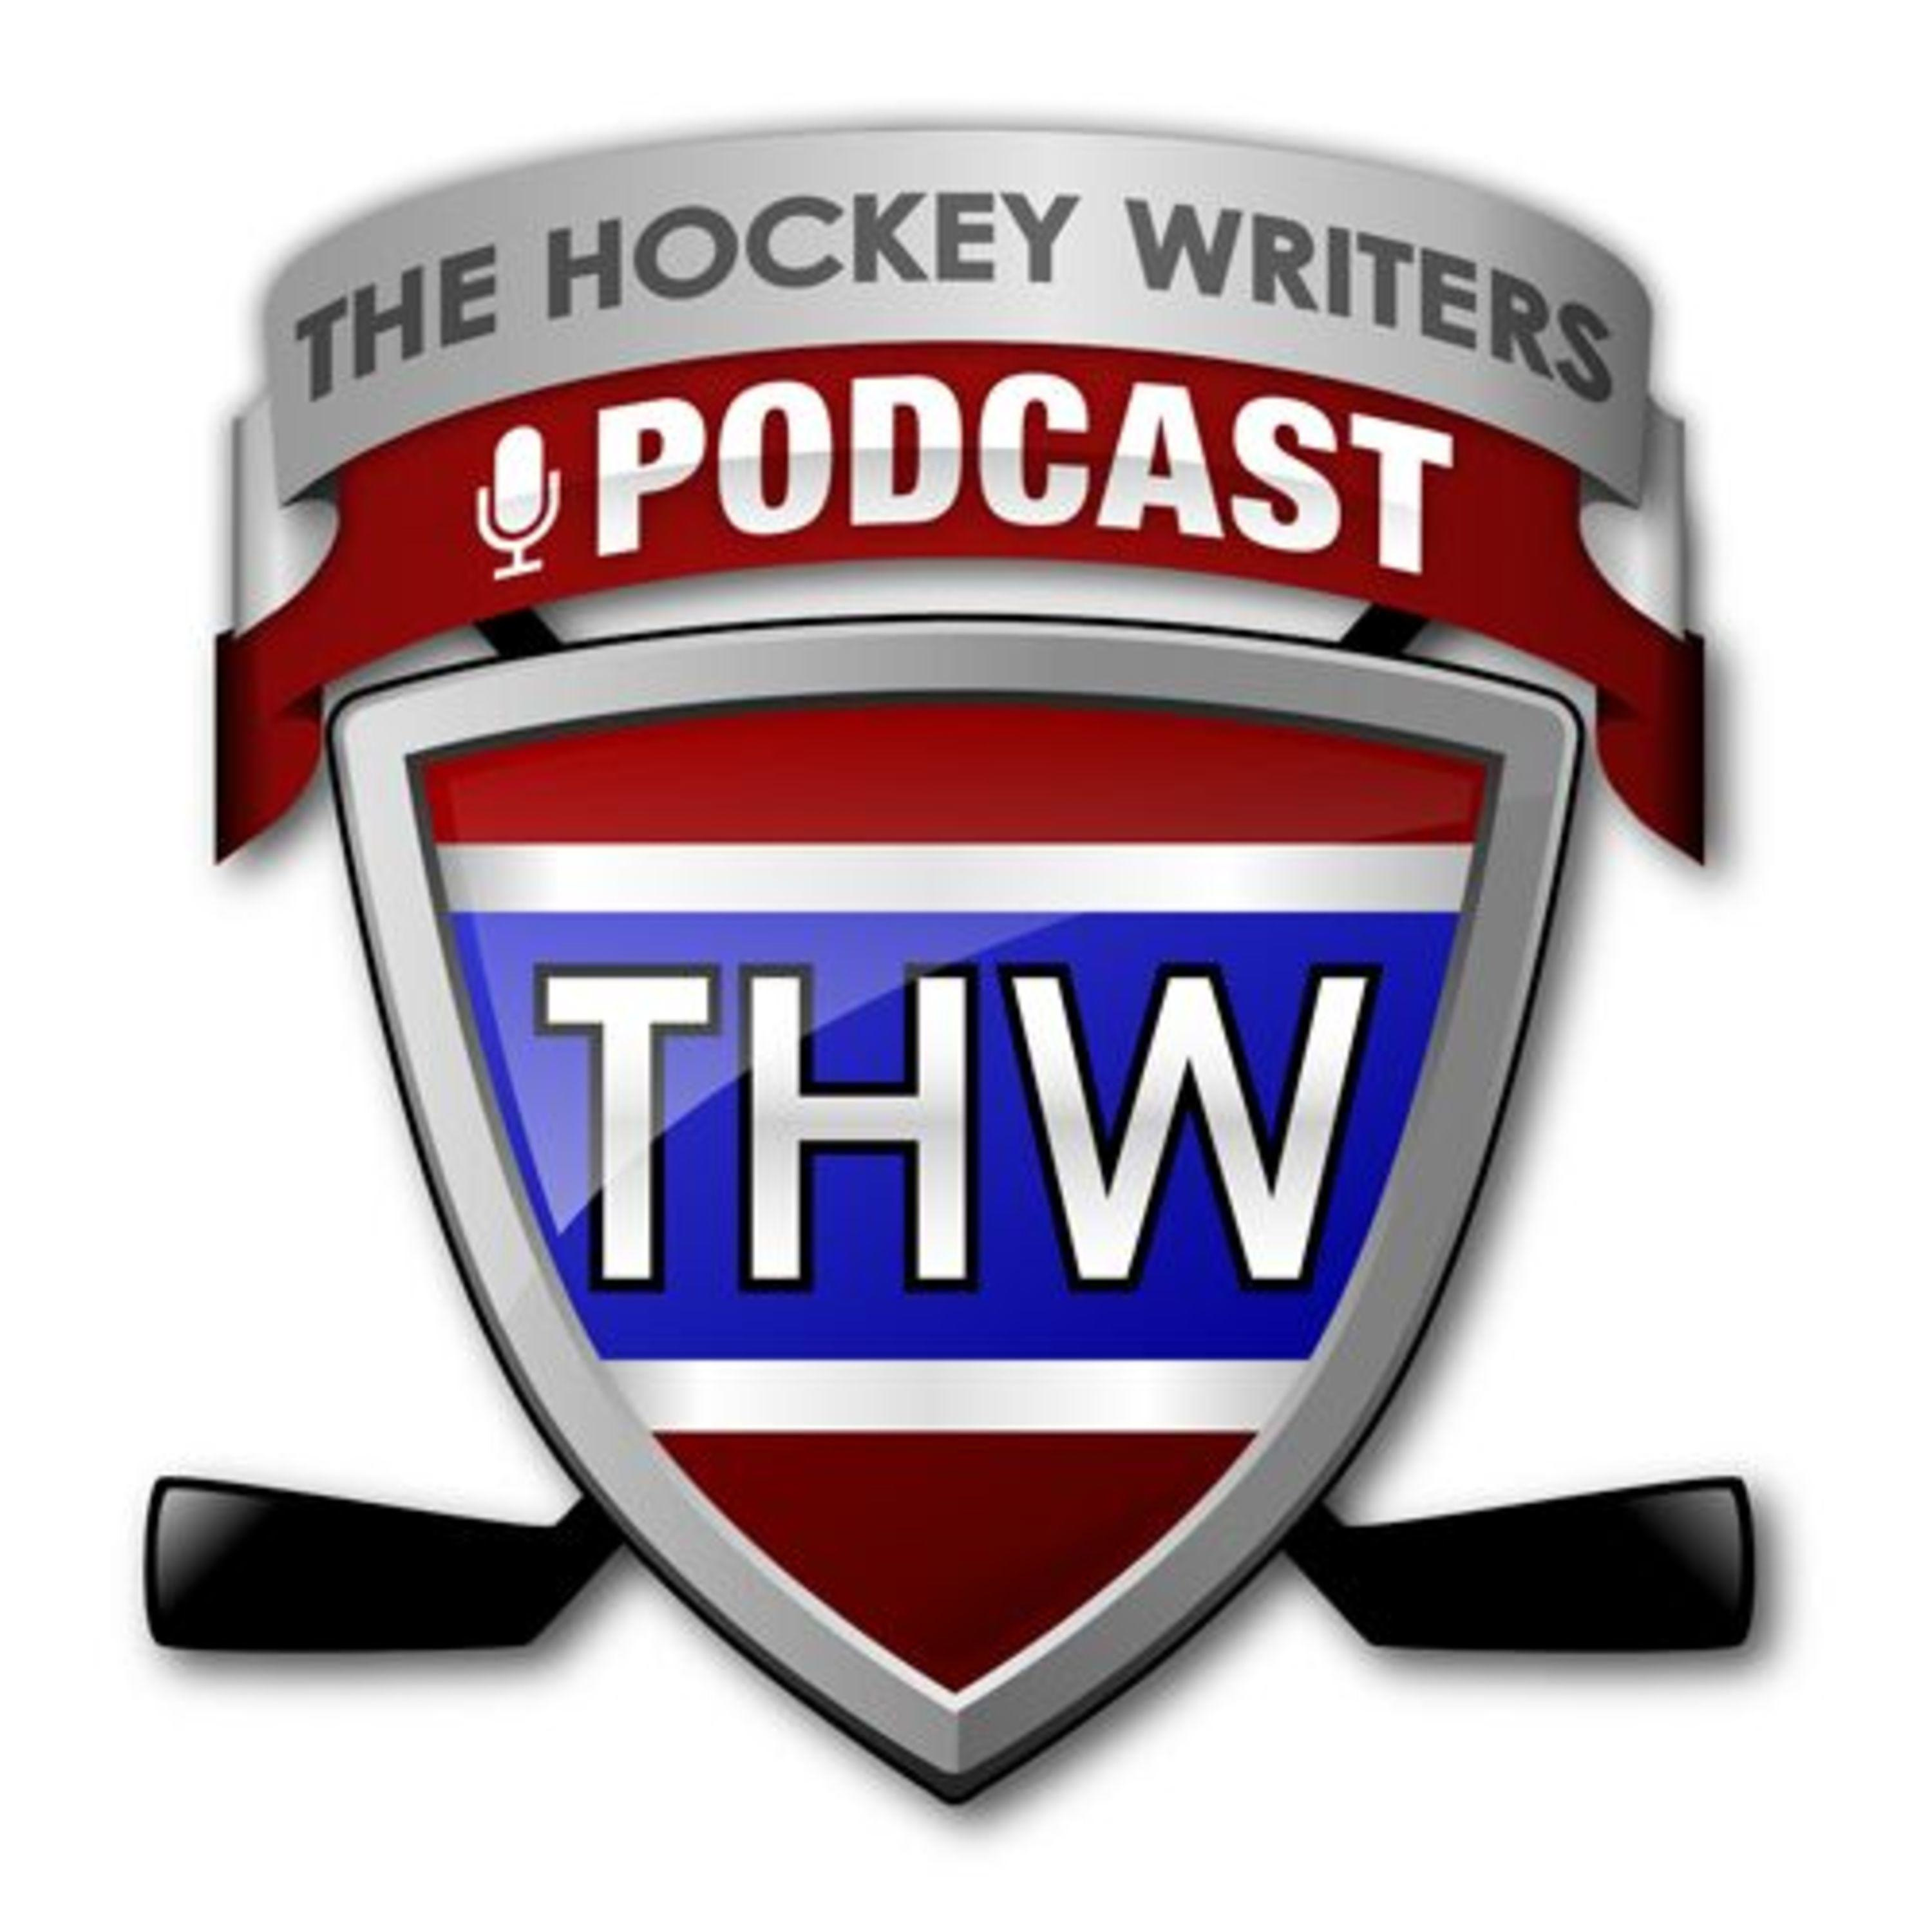 The Hockey Writers Podcast - Episode 21 - Oilers, Maple Leafs, Blues